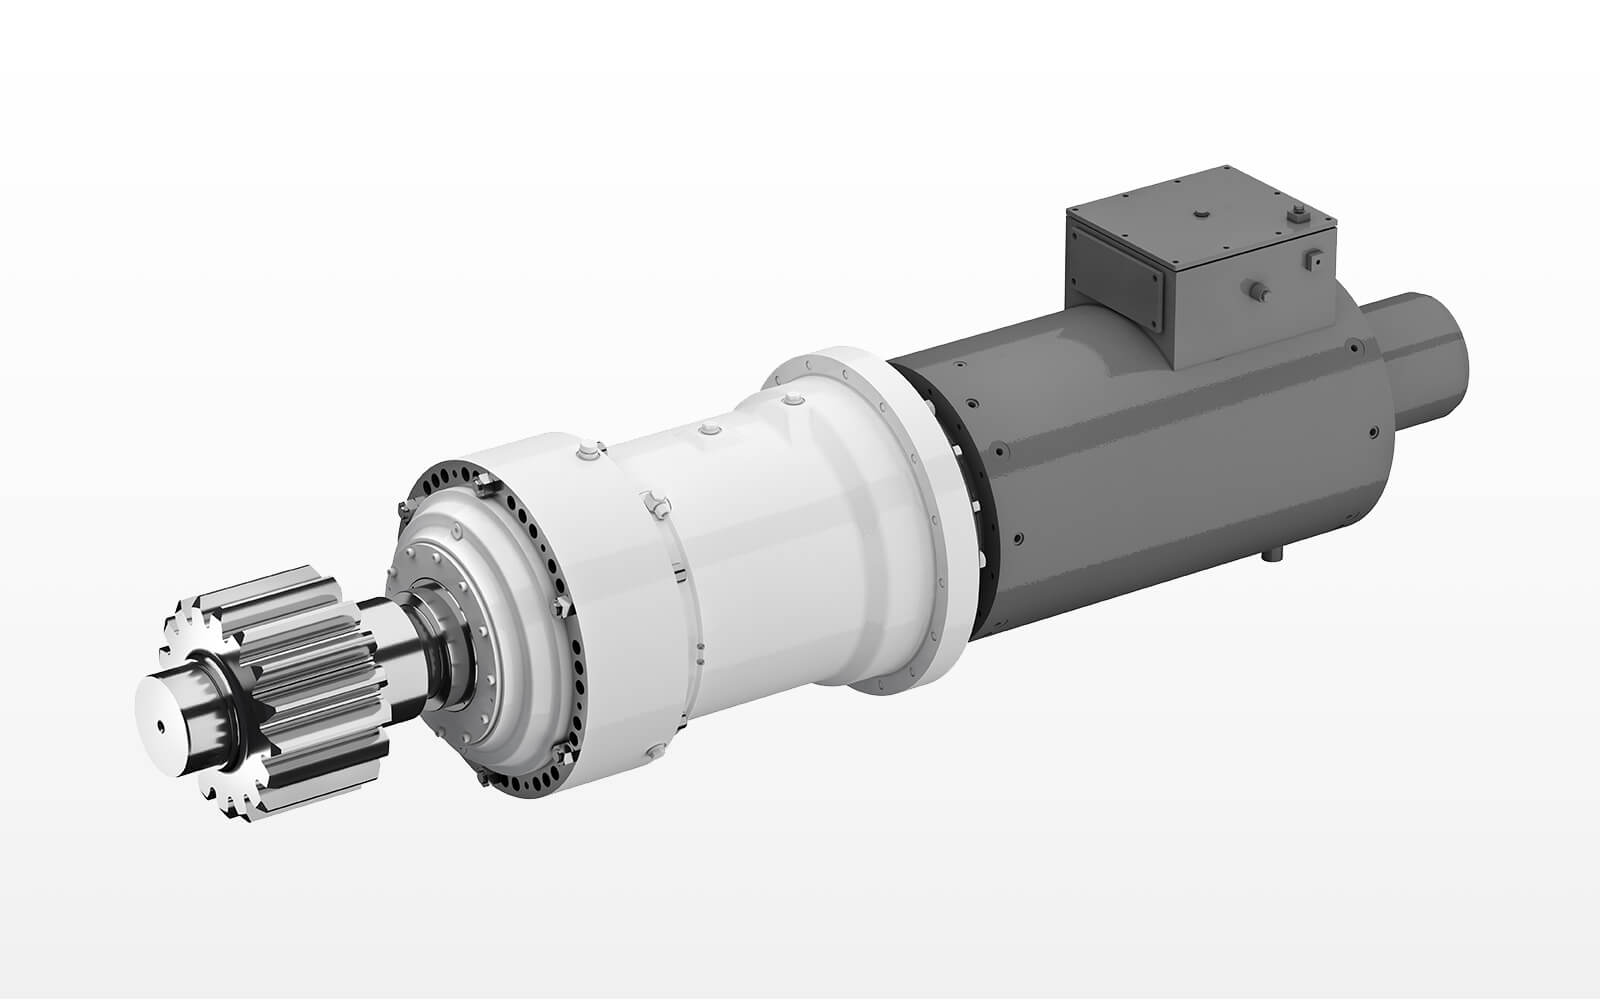 Main gearbox with asynchronous-motor in the power range of 200 till 400 kW